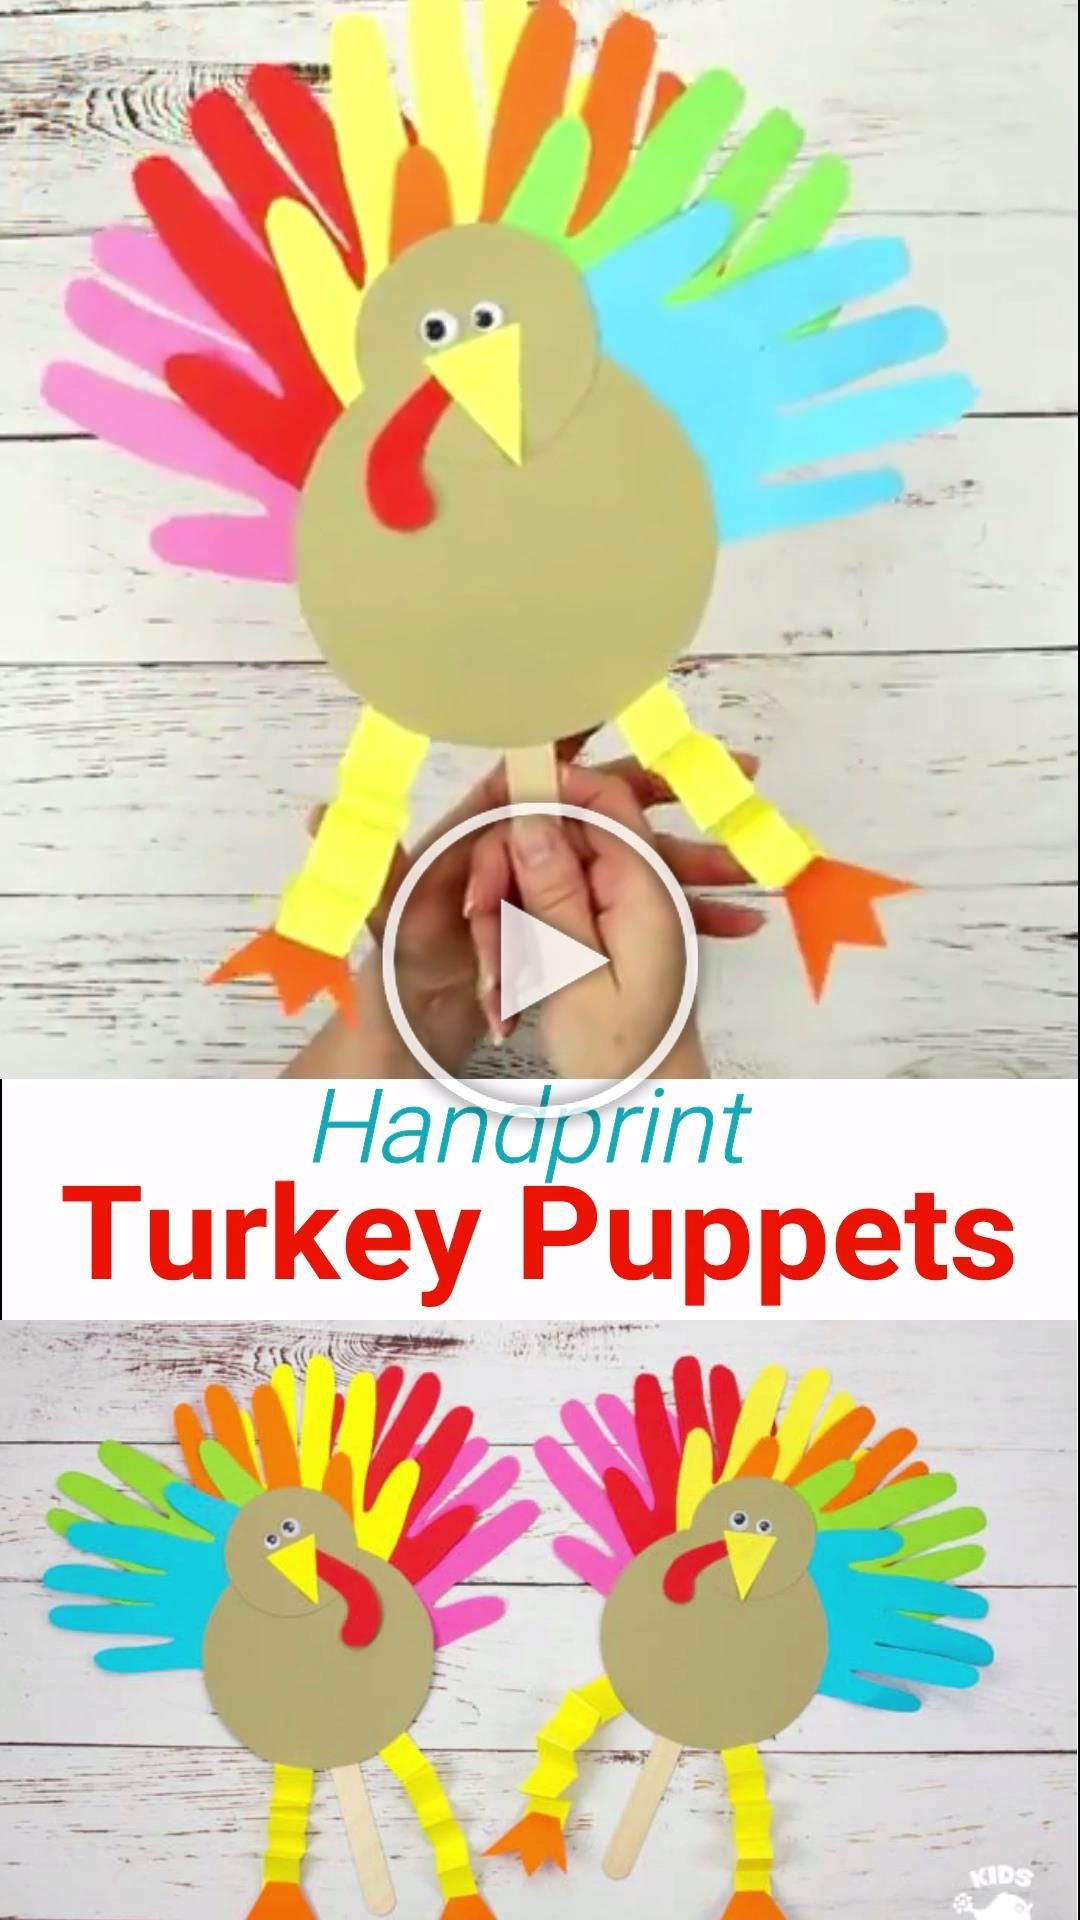 These Thanksgiving Handprint Turkey Puppets are such a fun way to keep the kids entertained this Fall holiday The Thanksgiving turkey crafts feathers are made from handpr...